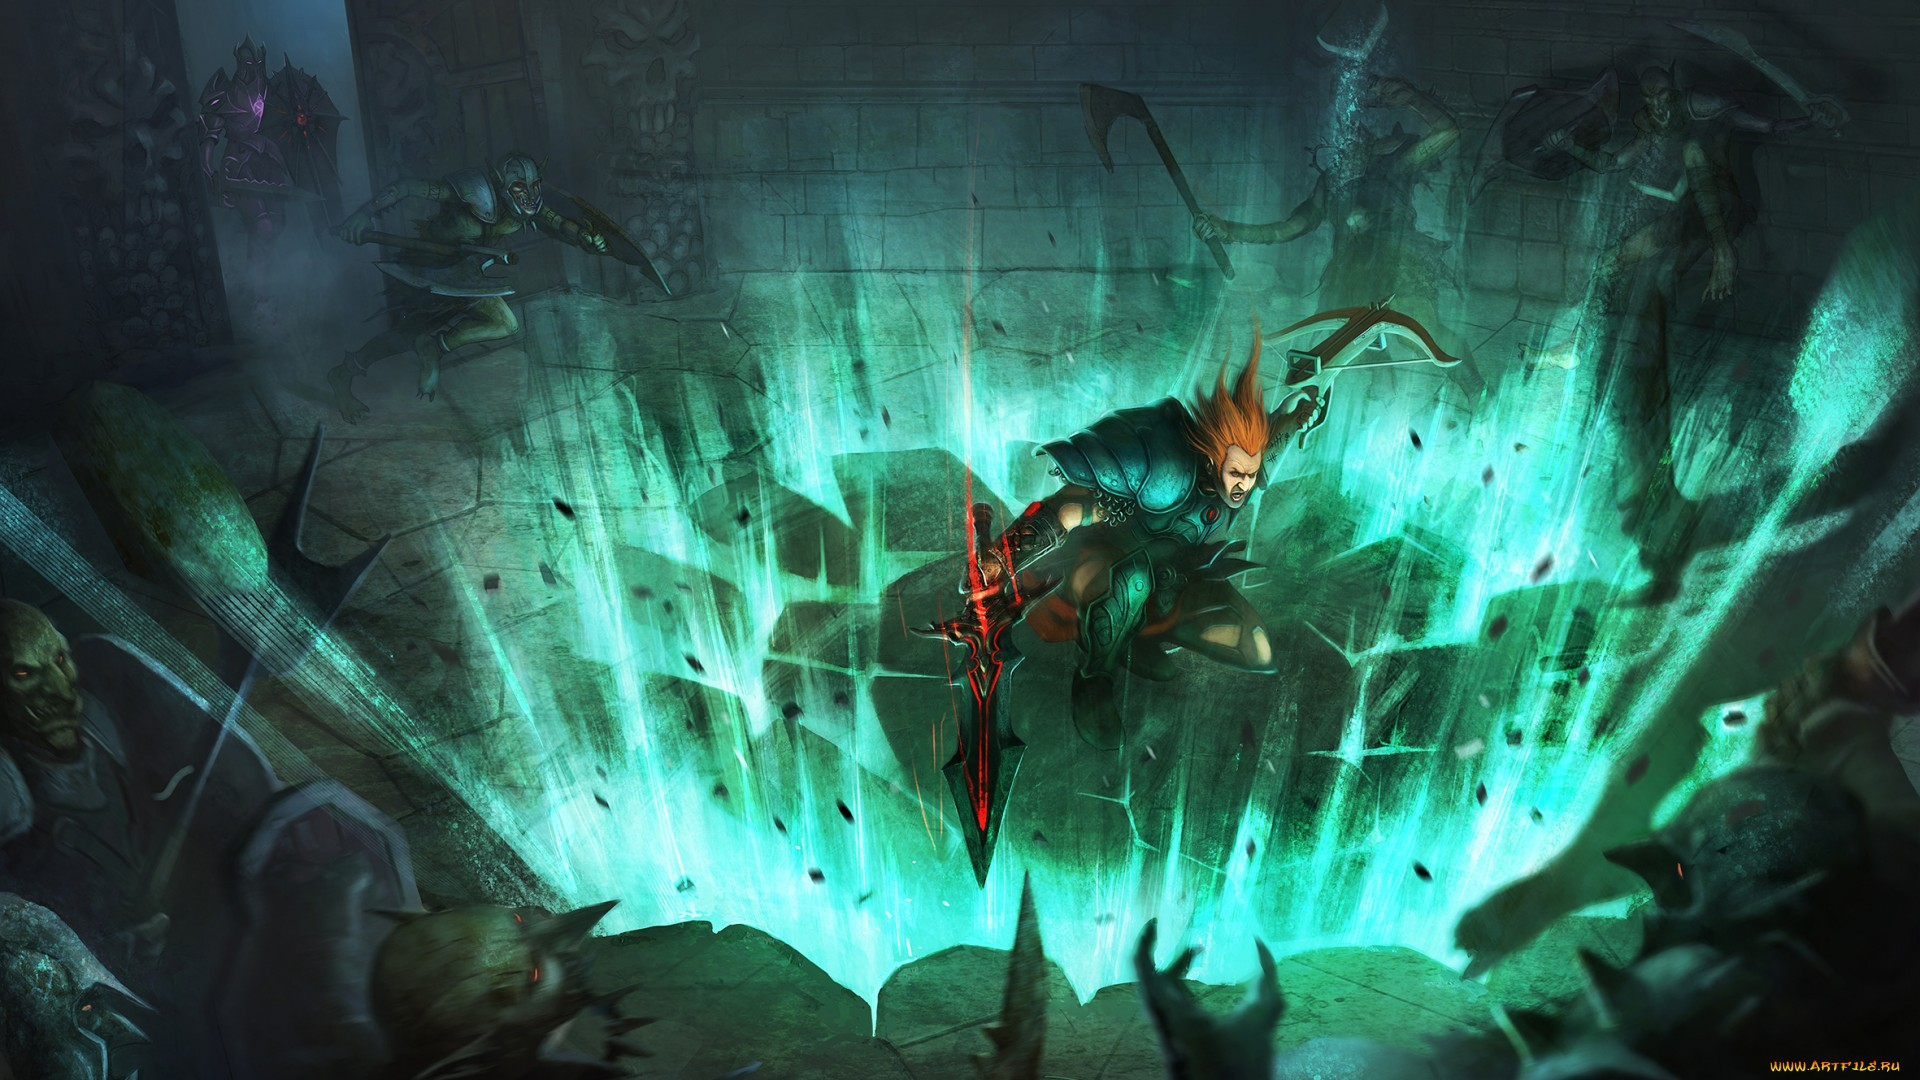 Hd Wallpapers That Will Take You To World Of Fantasy: Runescape Wallpapers High Quality